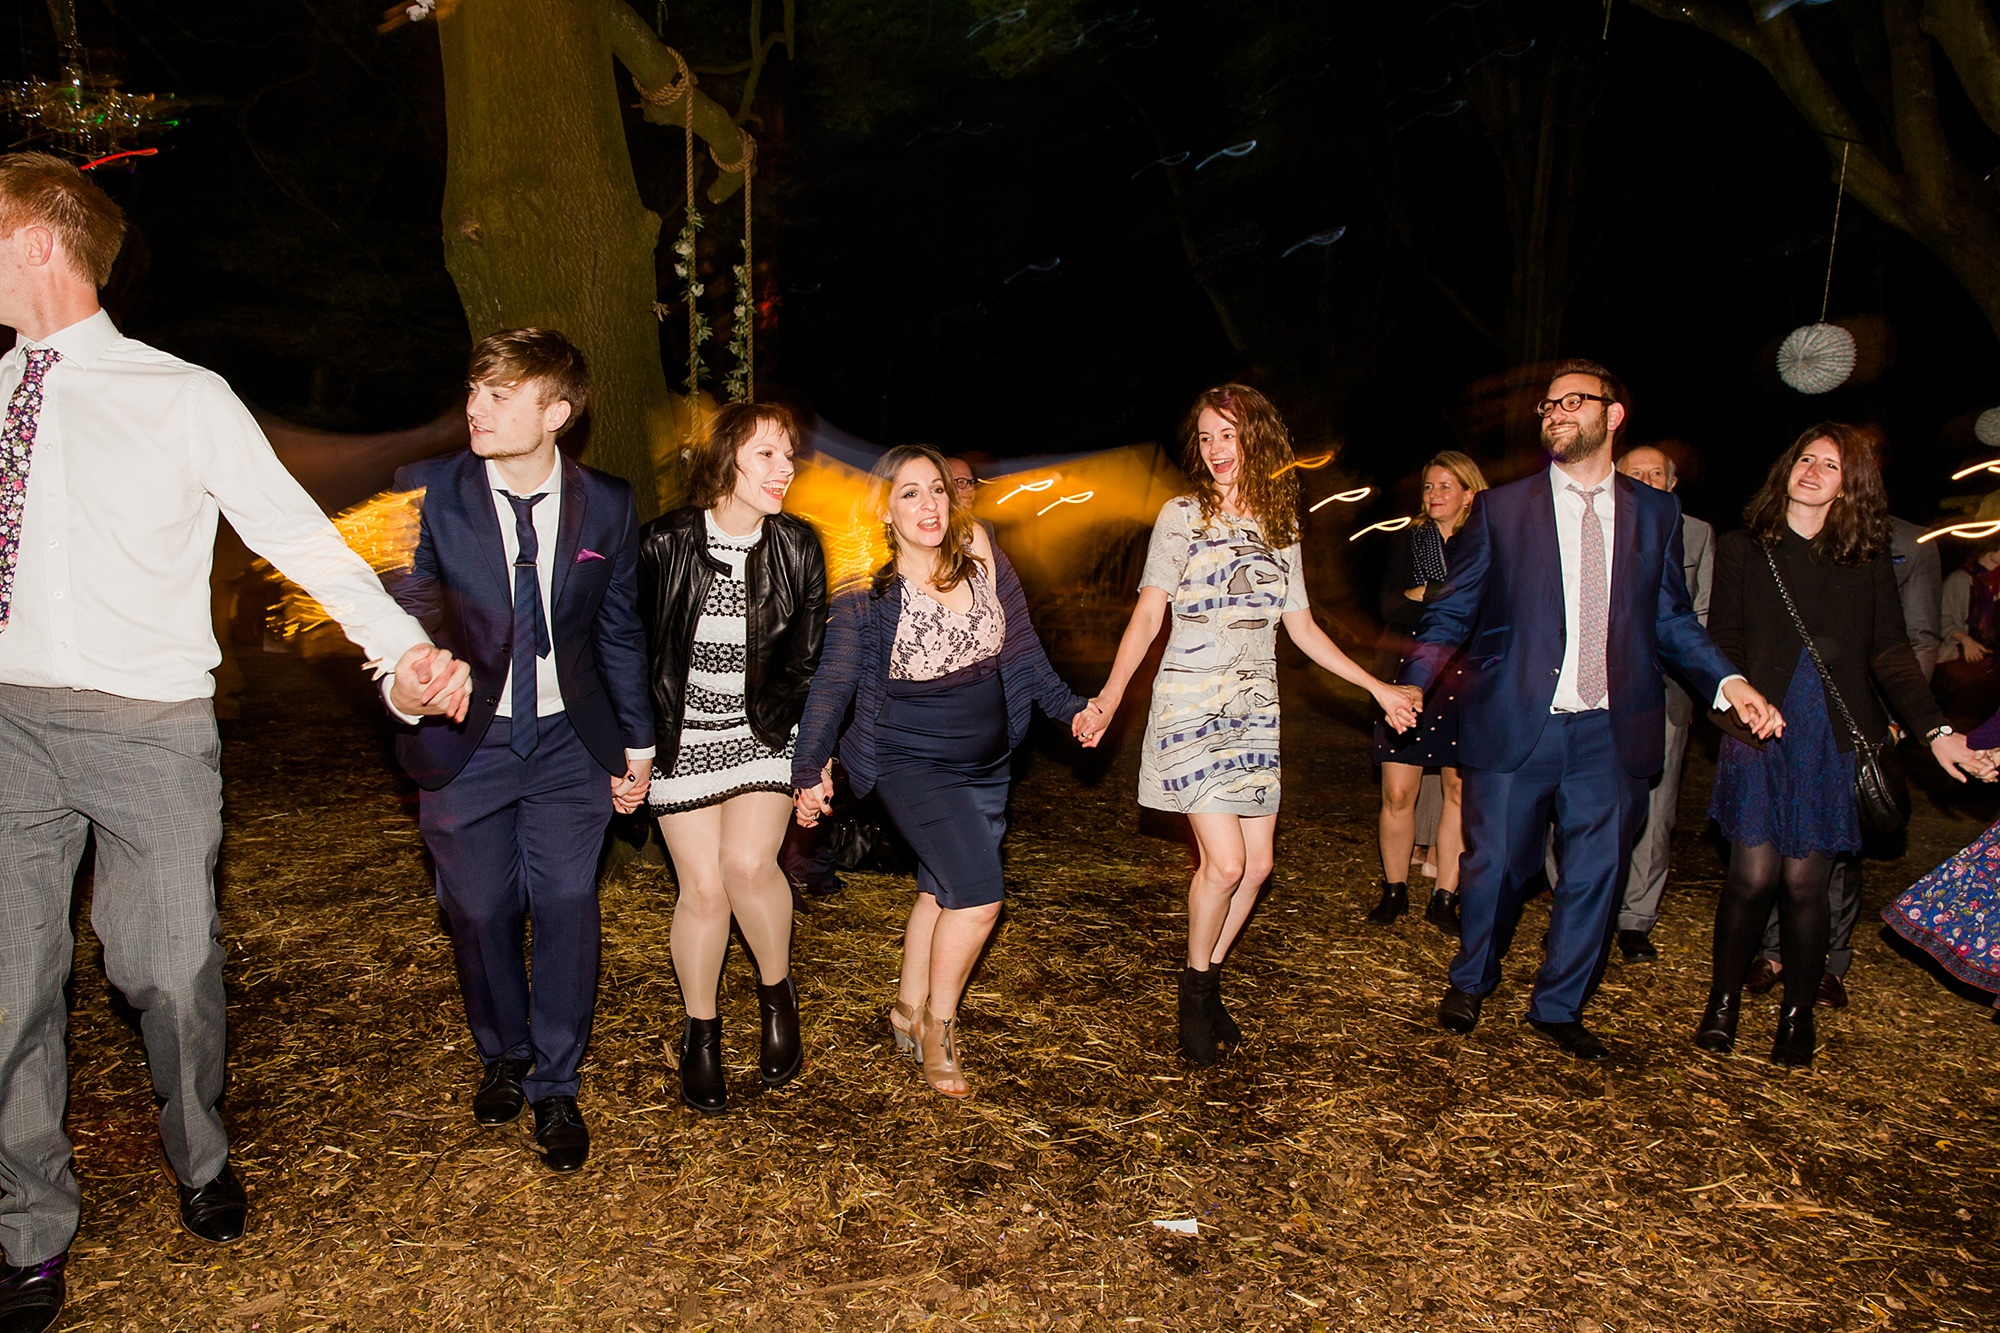 Woodland Weddings Tring guests dancing in circle